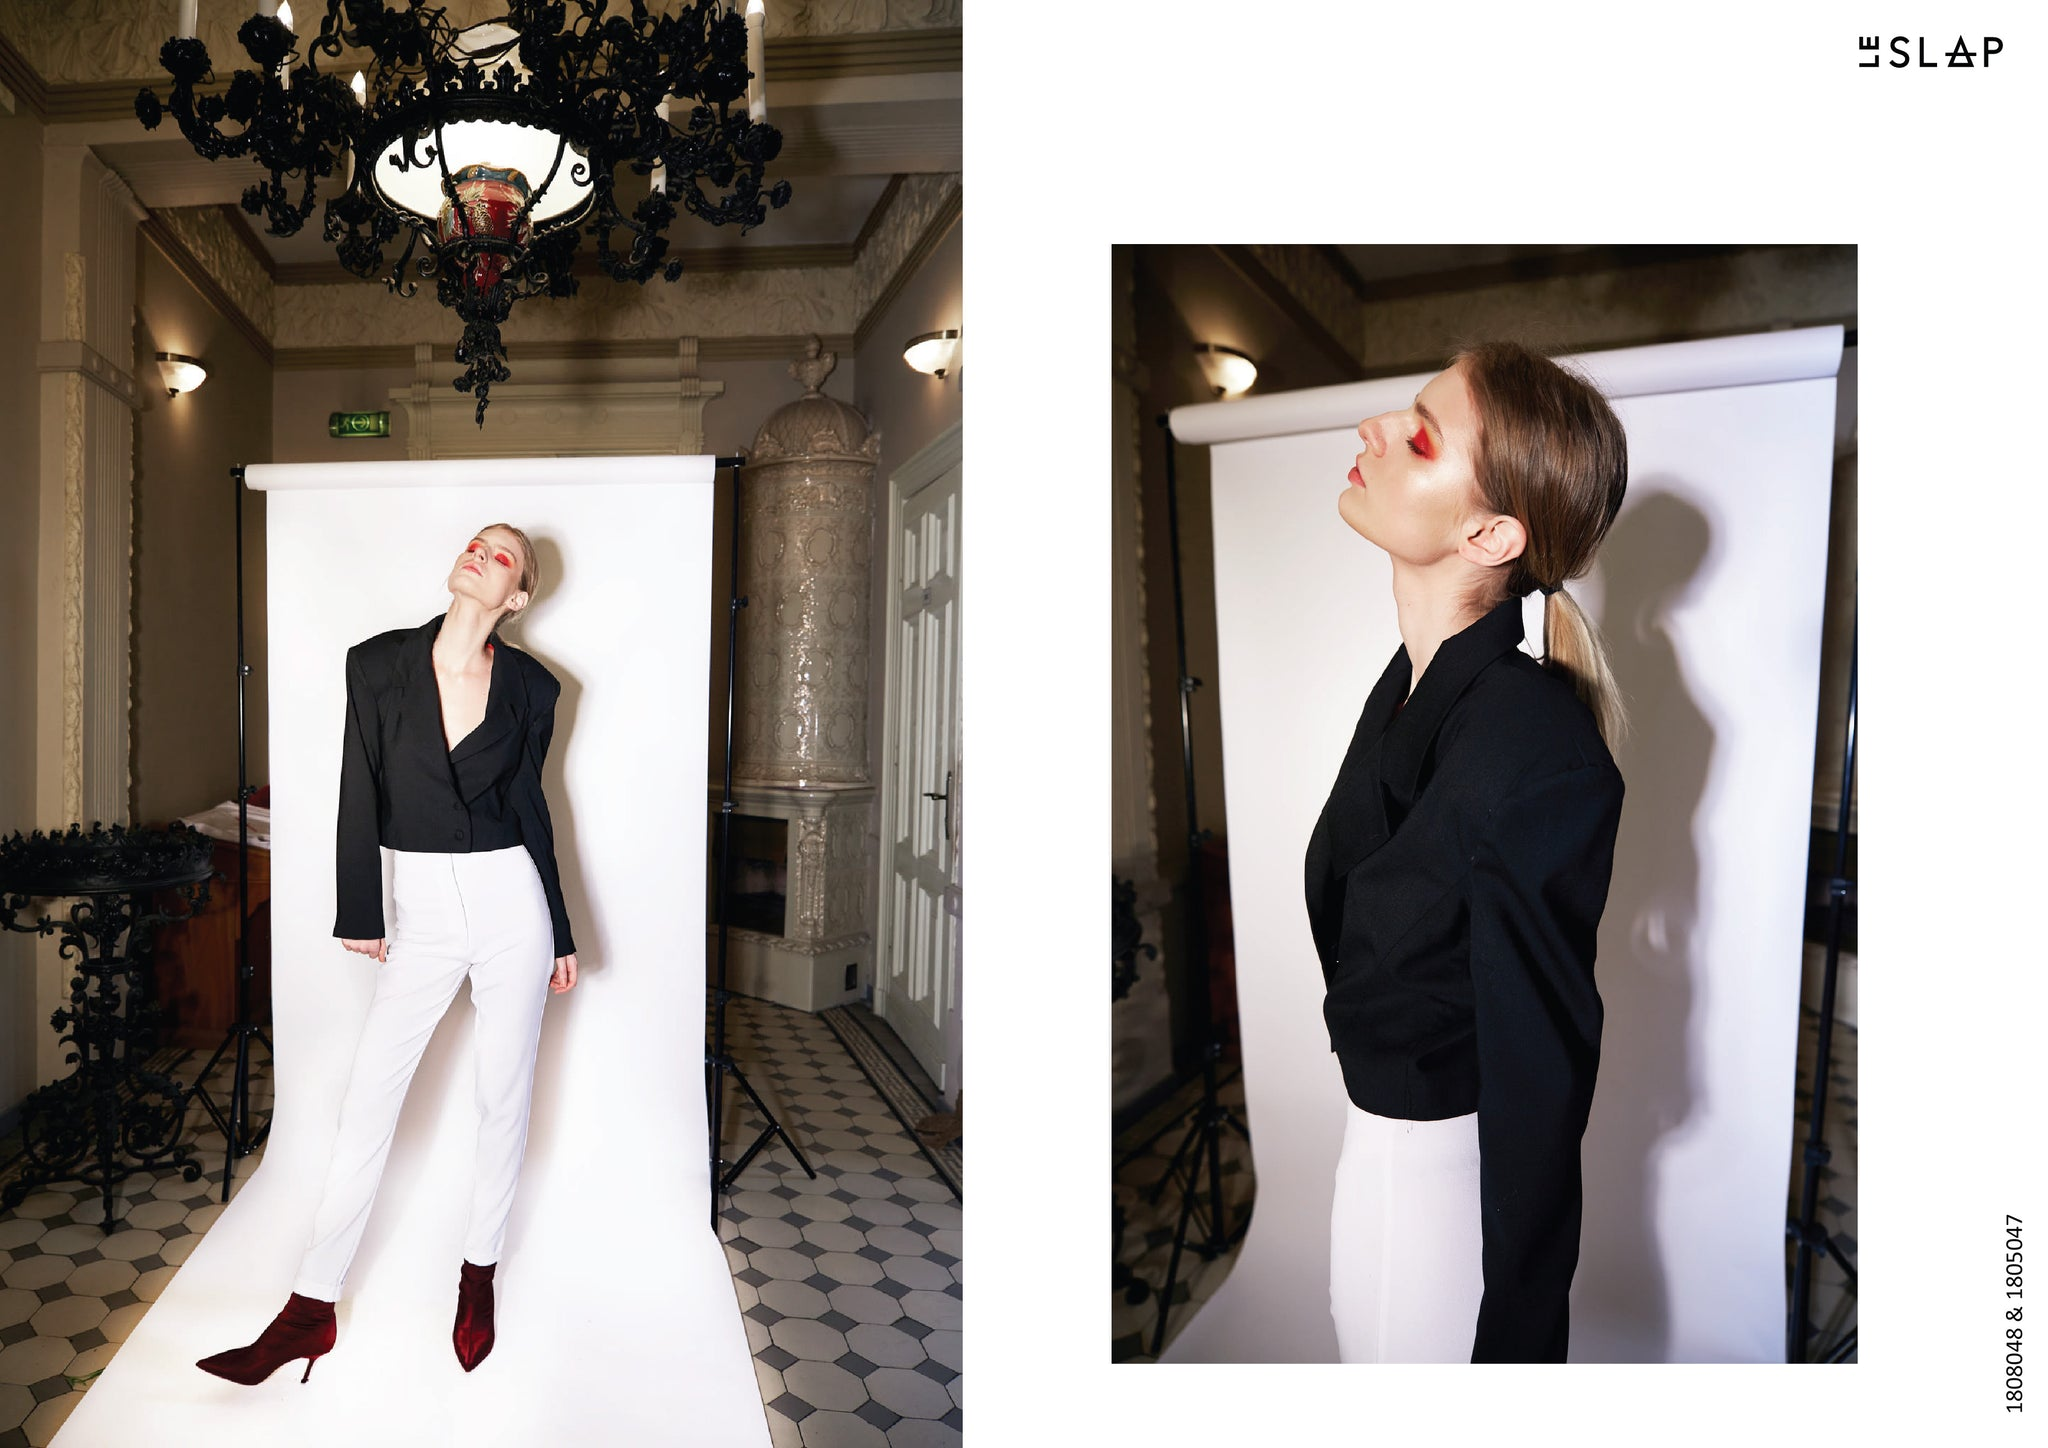 Le SLAP clothing brand lookbook statement fashion photoshoot White tailoring cigarette pants and Black cut fit jacket